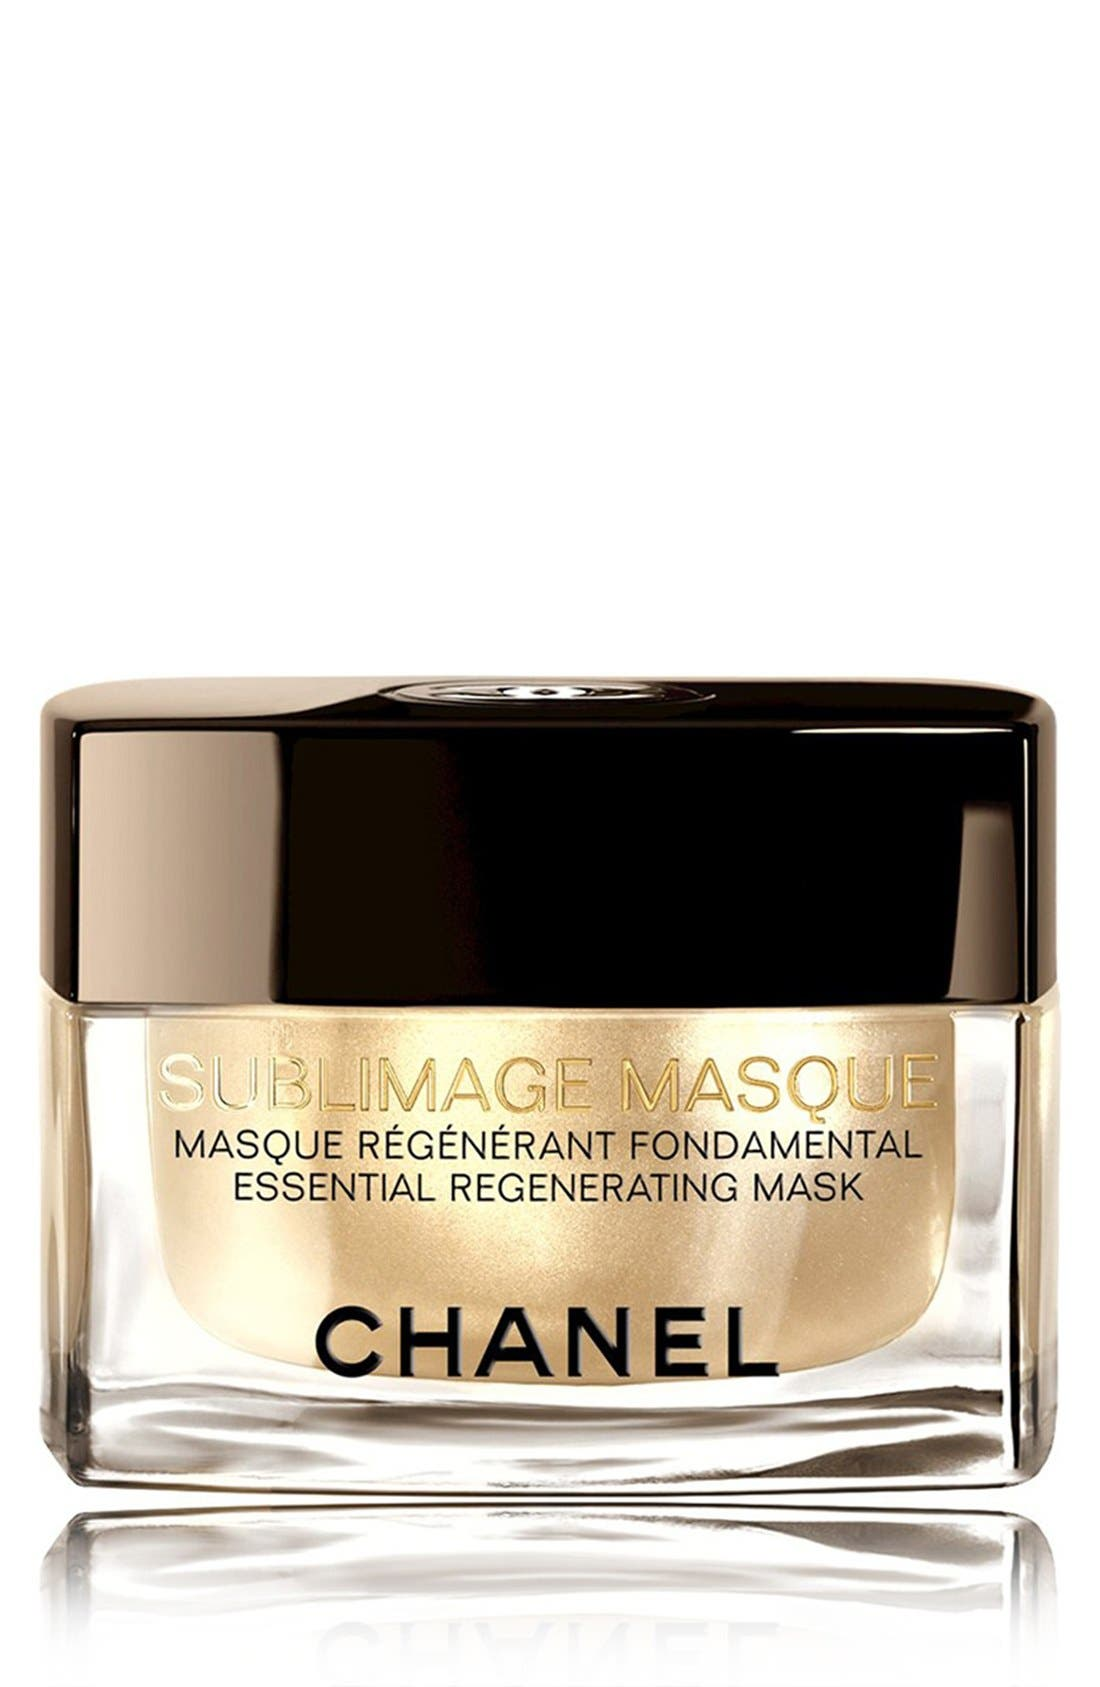 SUBLIMAGE MASQUE<br />Essential Regenerating Mask,                             Main thumbnail 1, color,                             NO COLOR